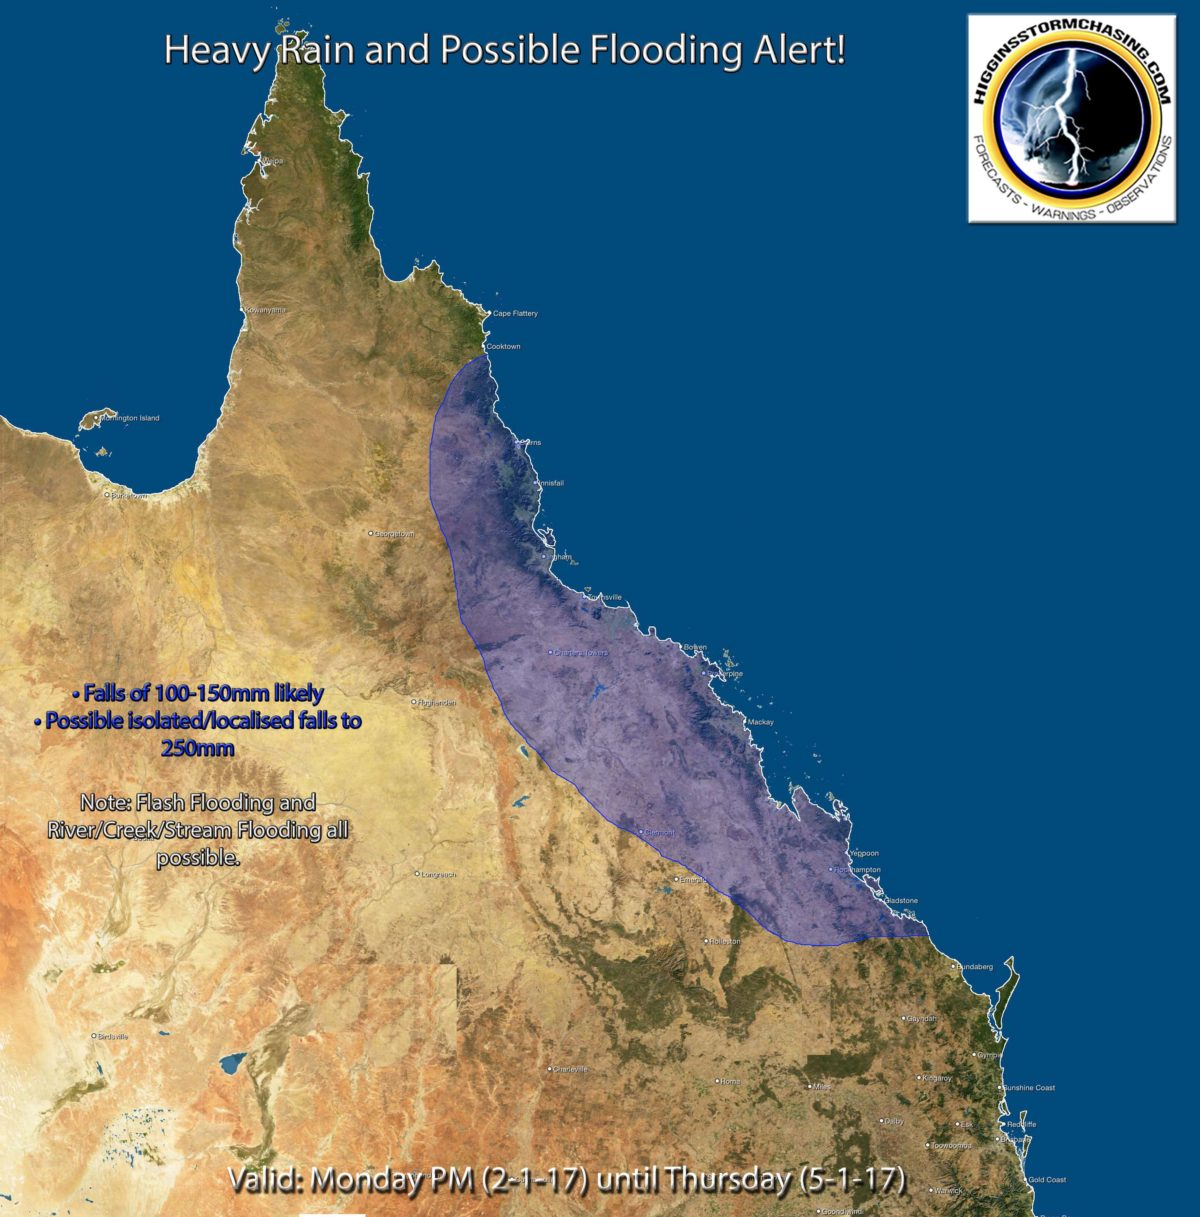 qld-flood-alert-1